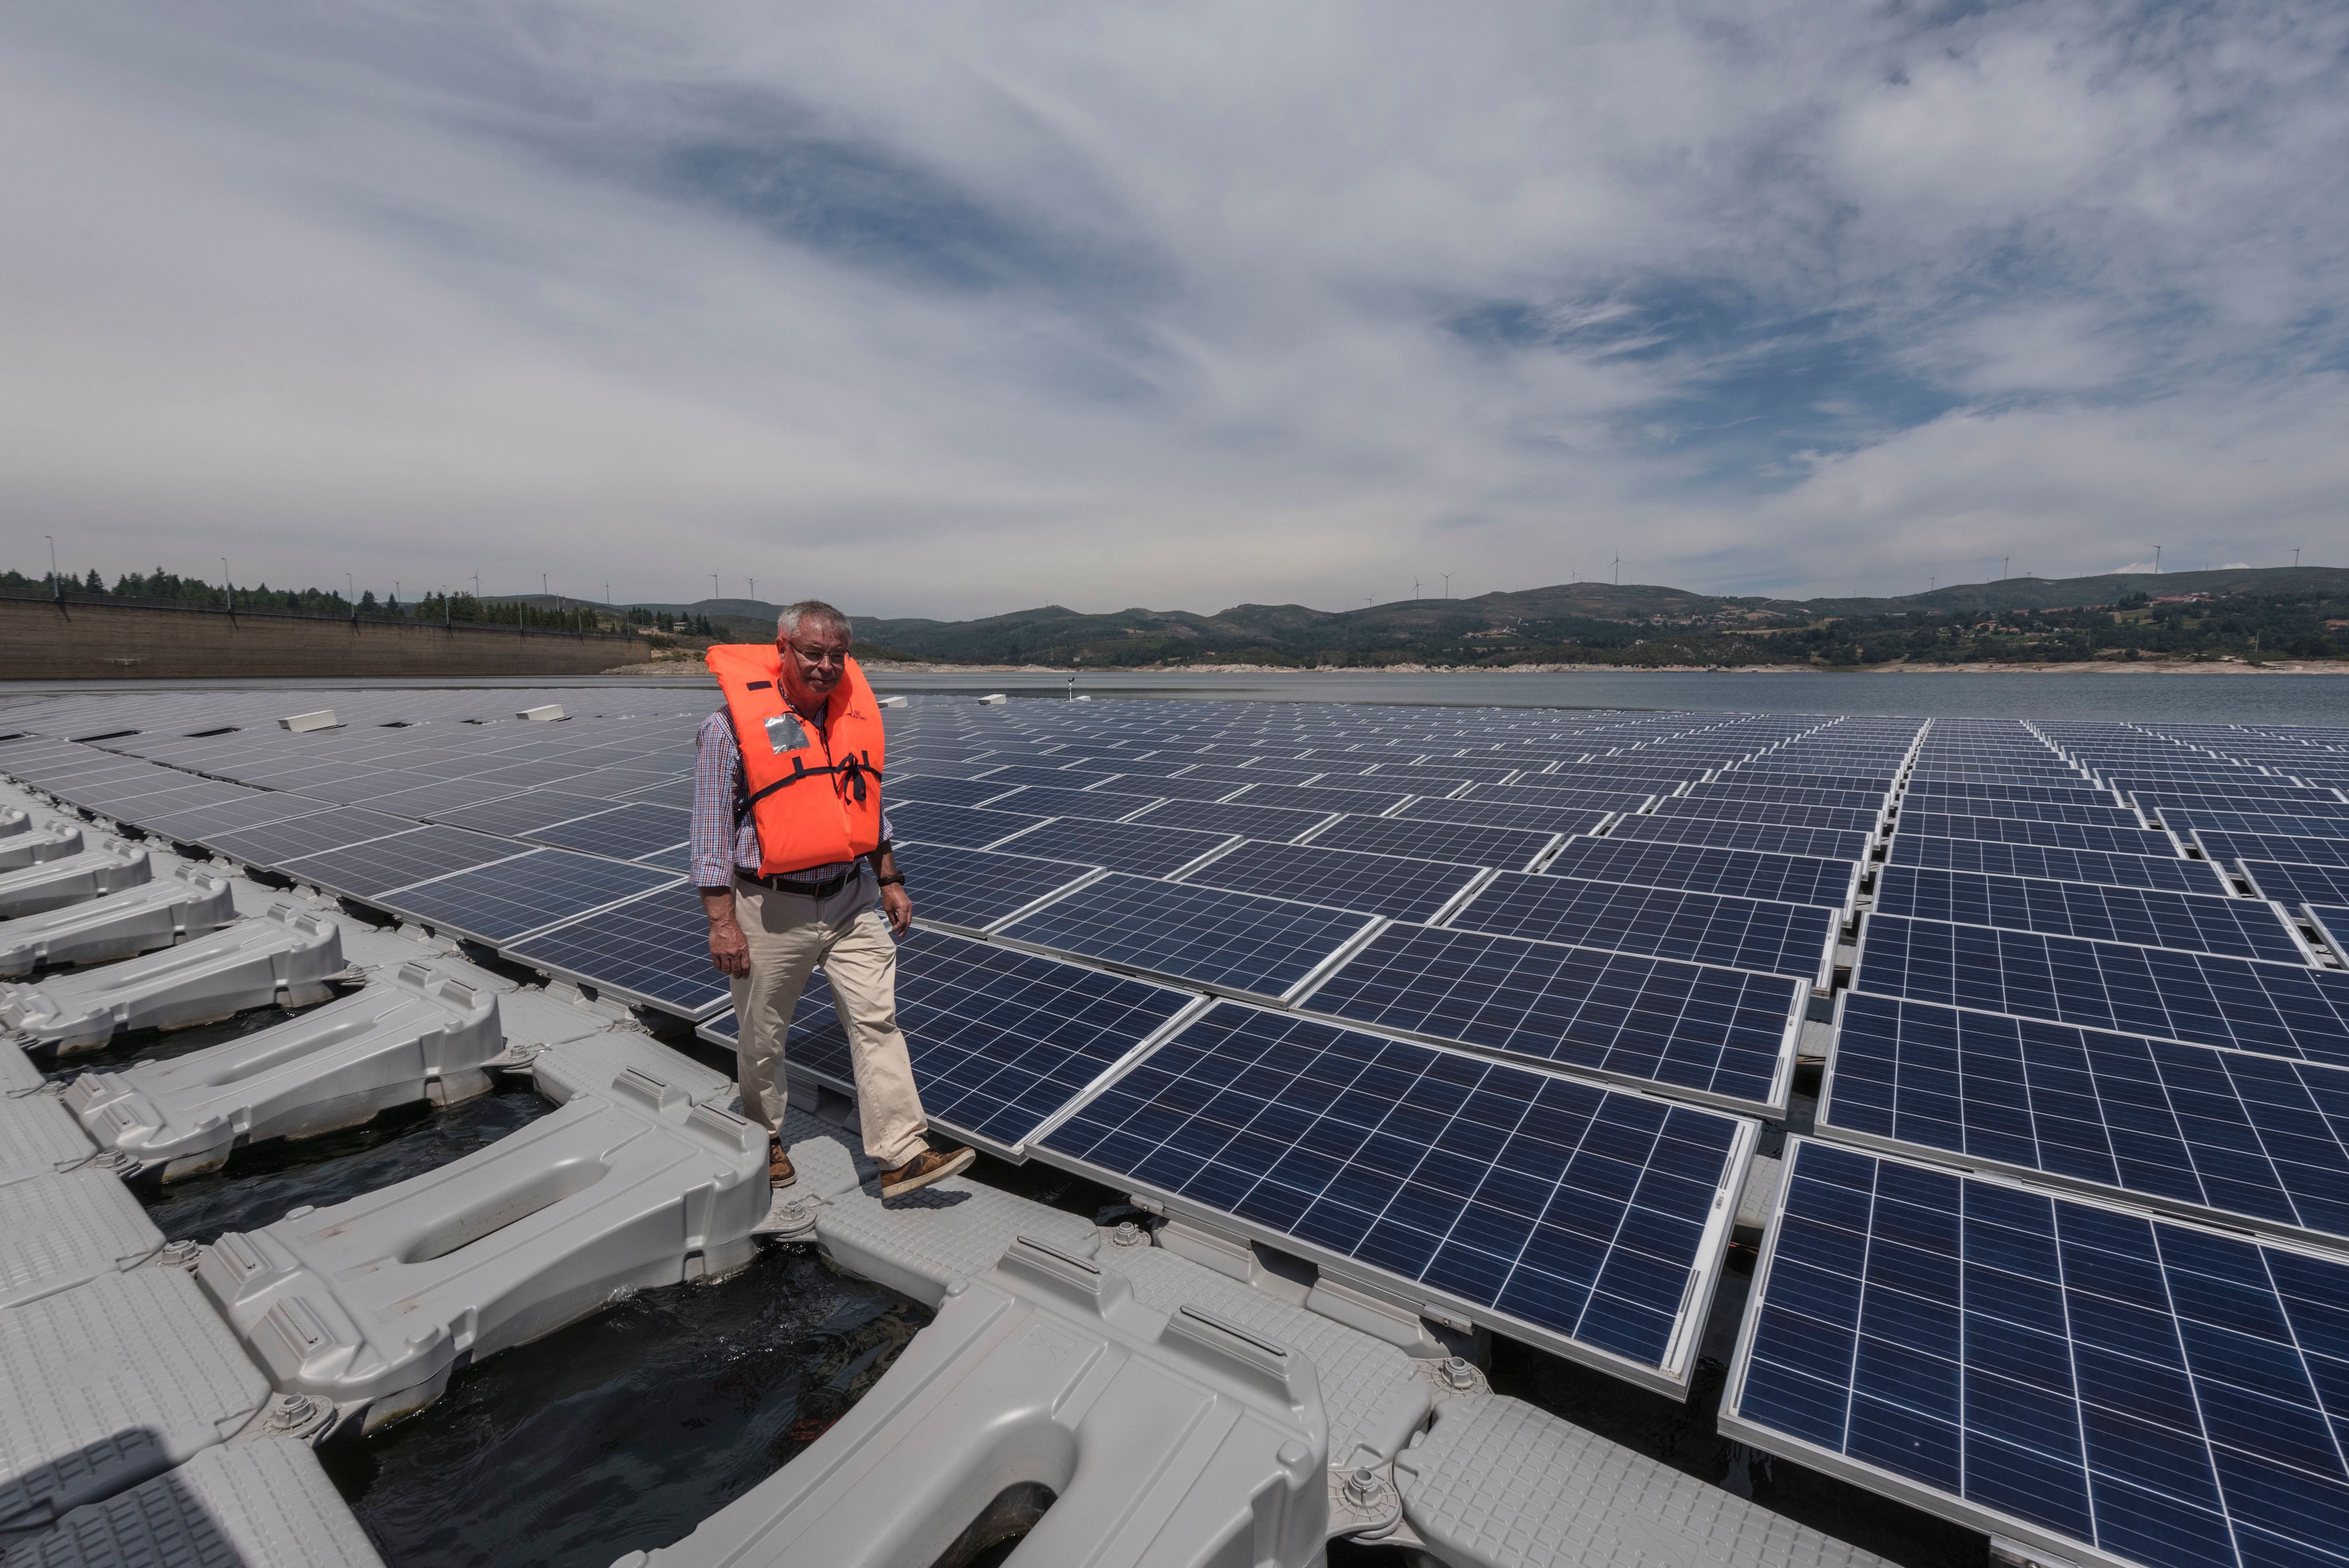 Floating solar panels at Alto Rabagão dam, the world's first combined hydro and floating photovoltaic project, were of